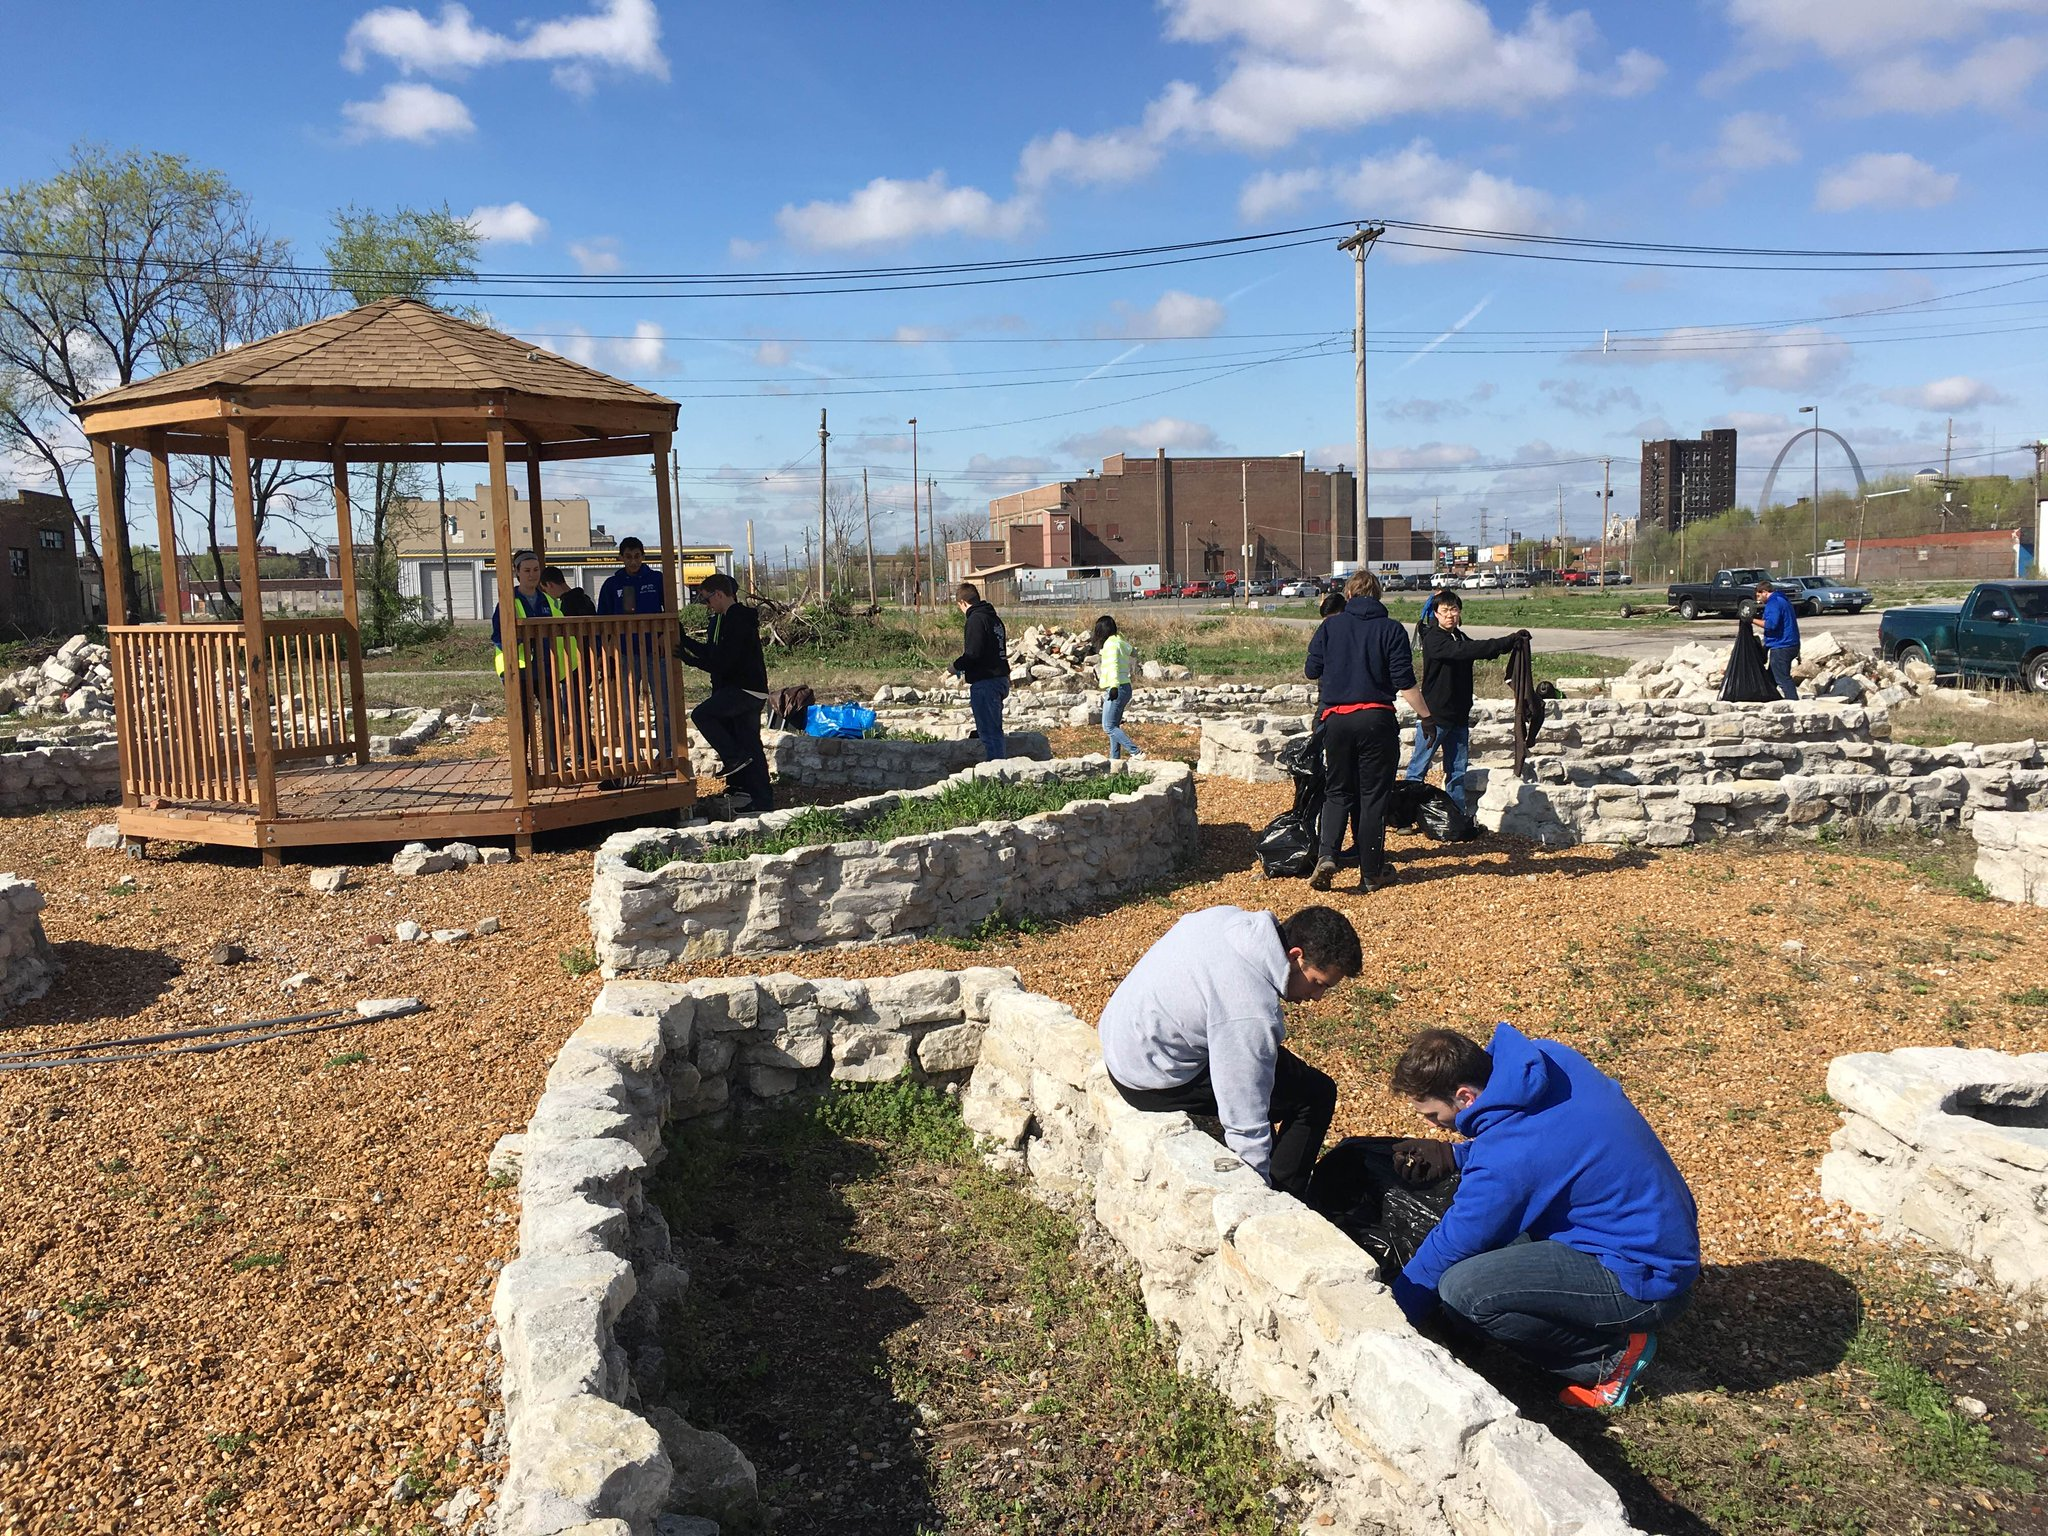 We are working inside and outside today and the Christian Activity Center! #ServiceDay https://t.co/F5hIBHfaQa